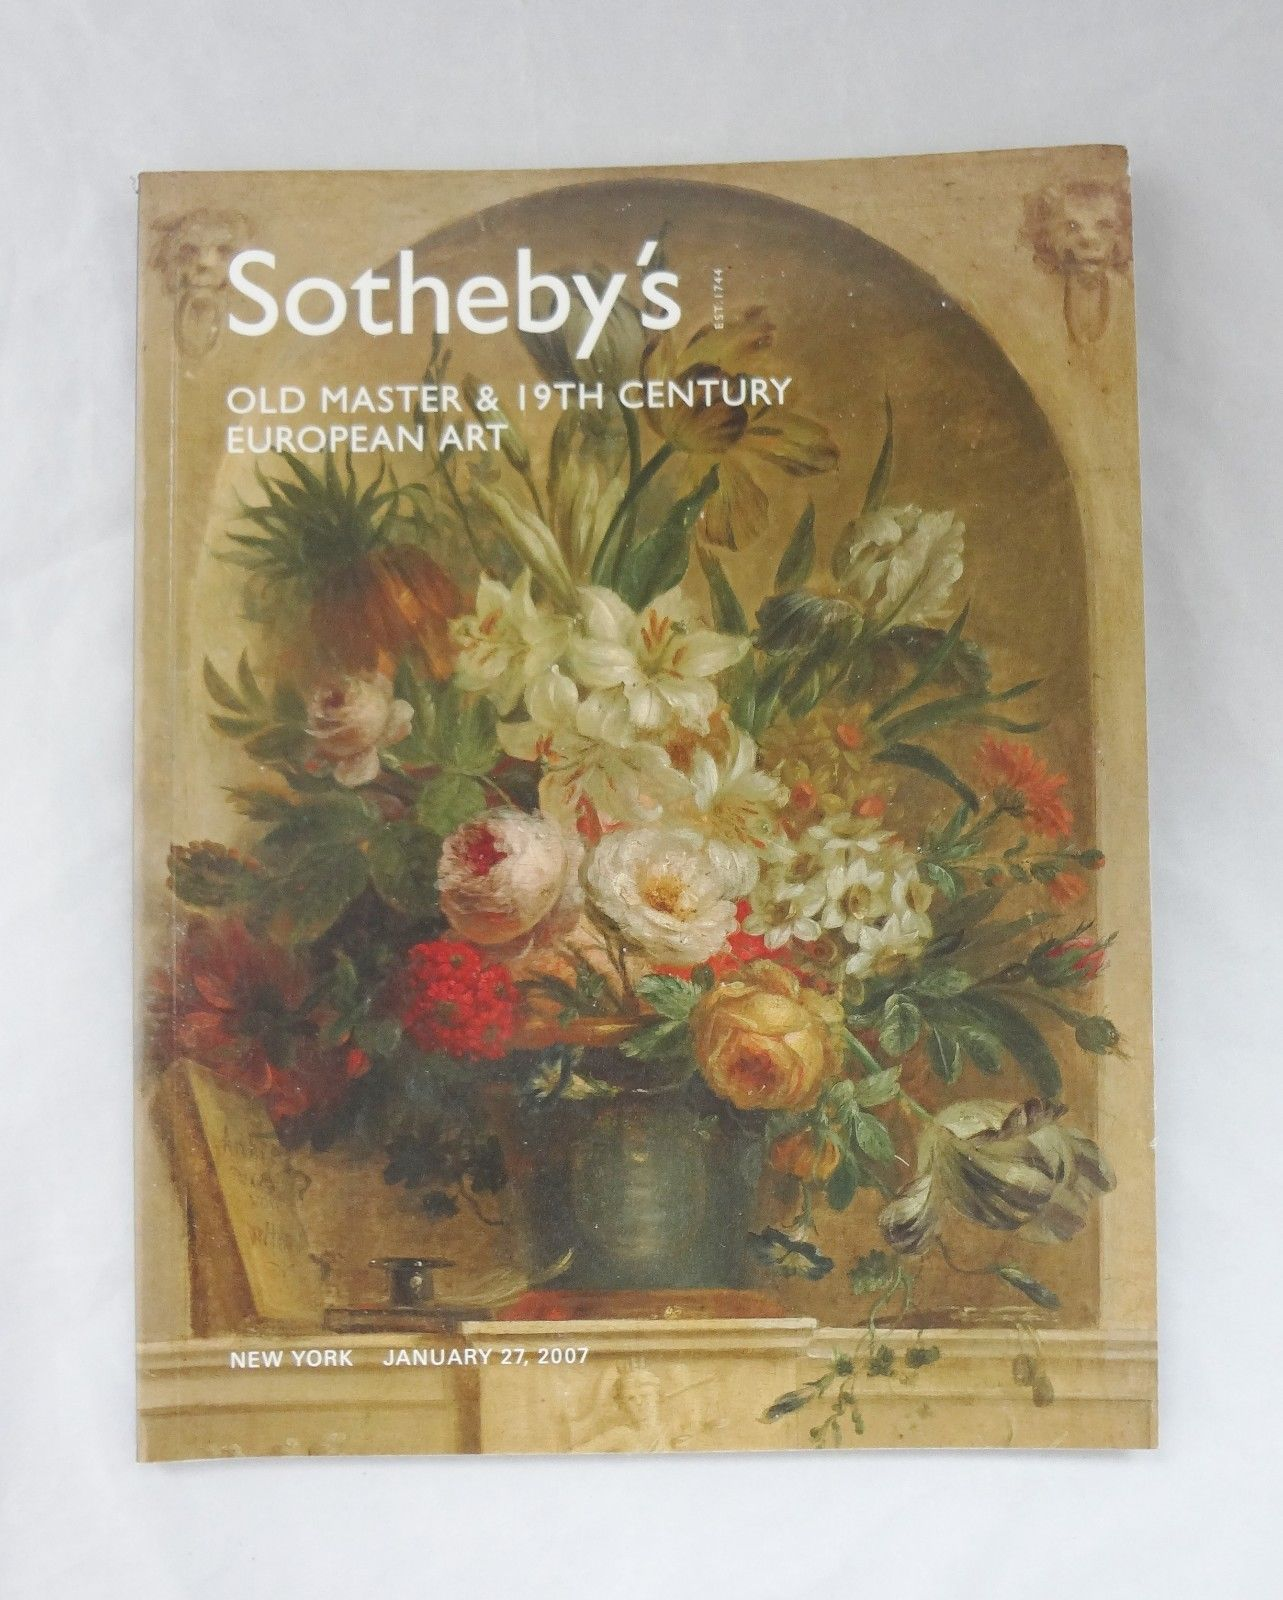 Sotheby's NY Old Masters & 19th Century European Art Catalog Jan 27, 1007